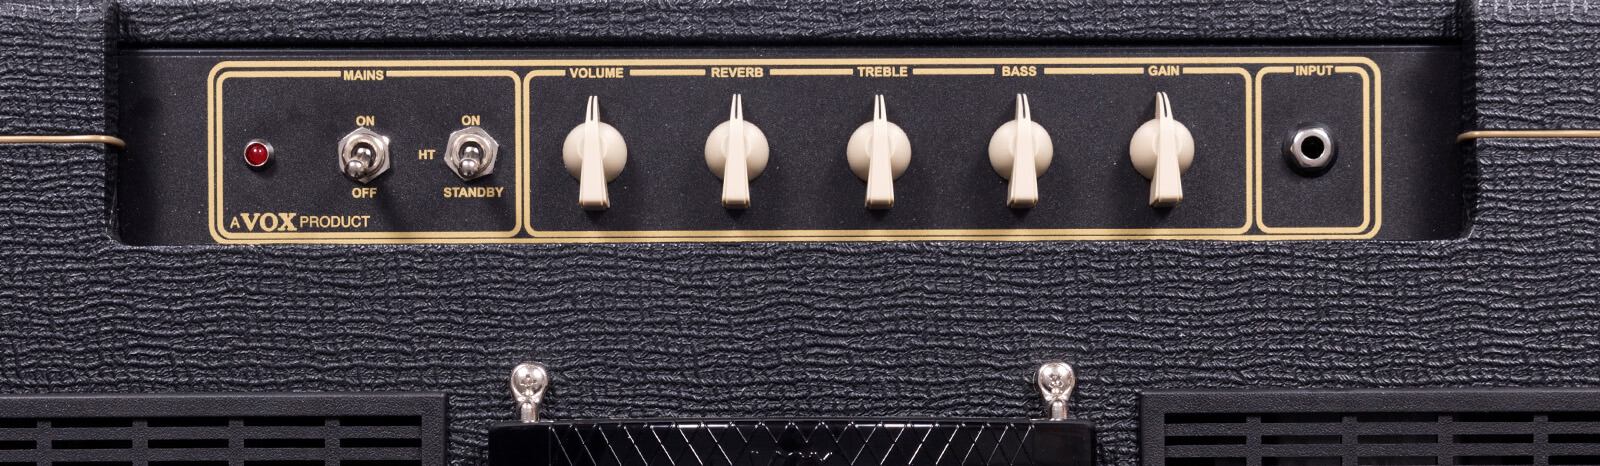 closeup of controls on VOX amplifier